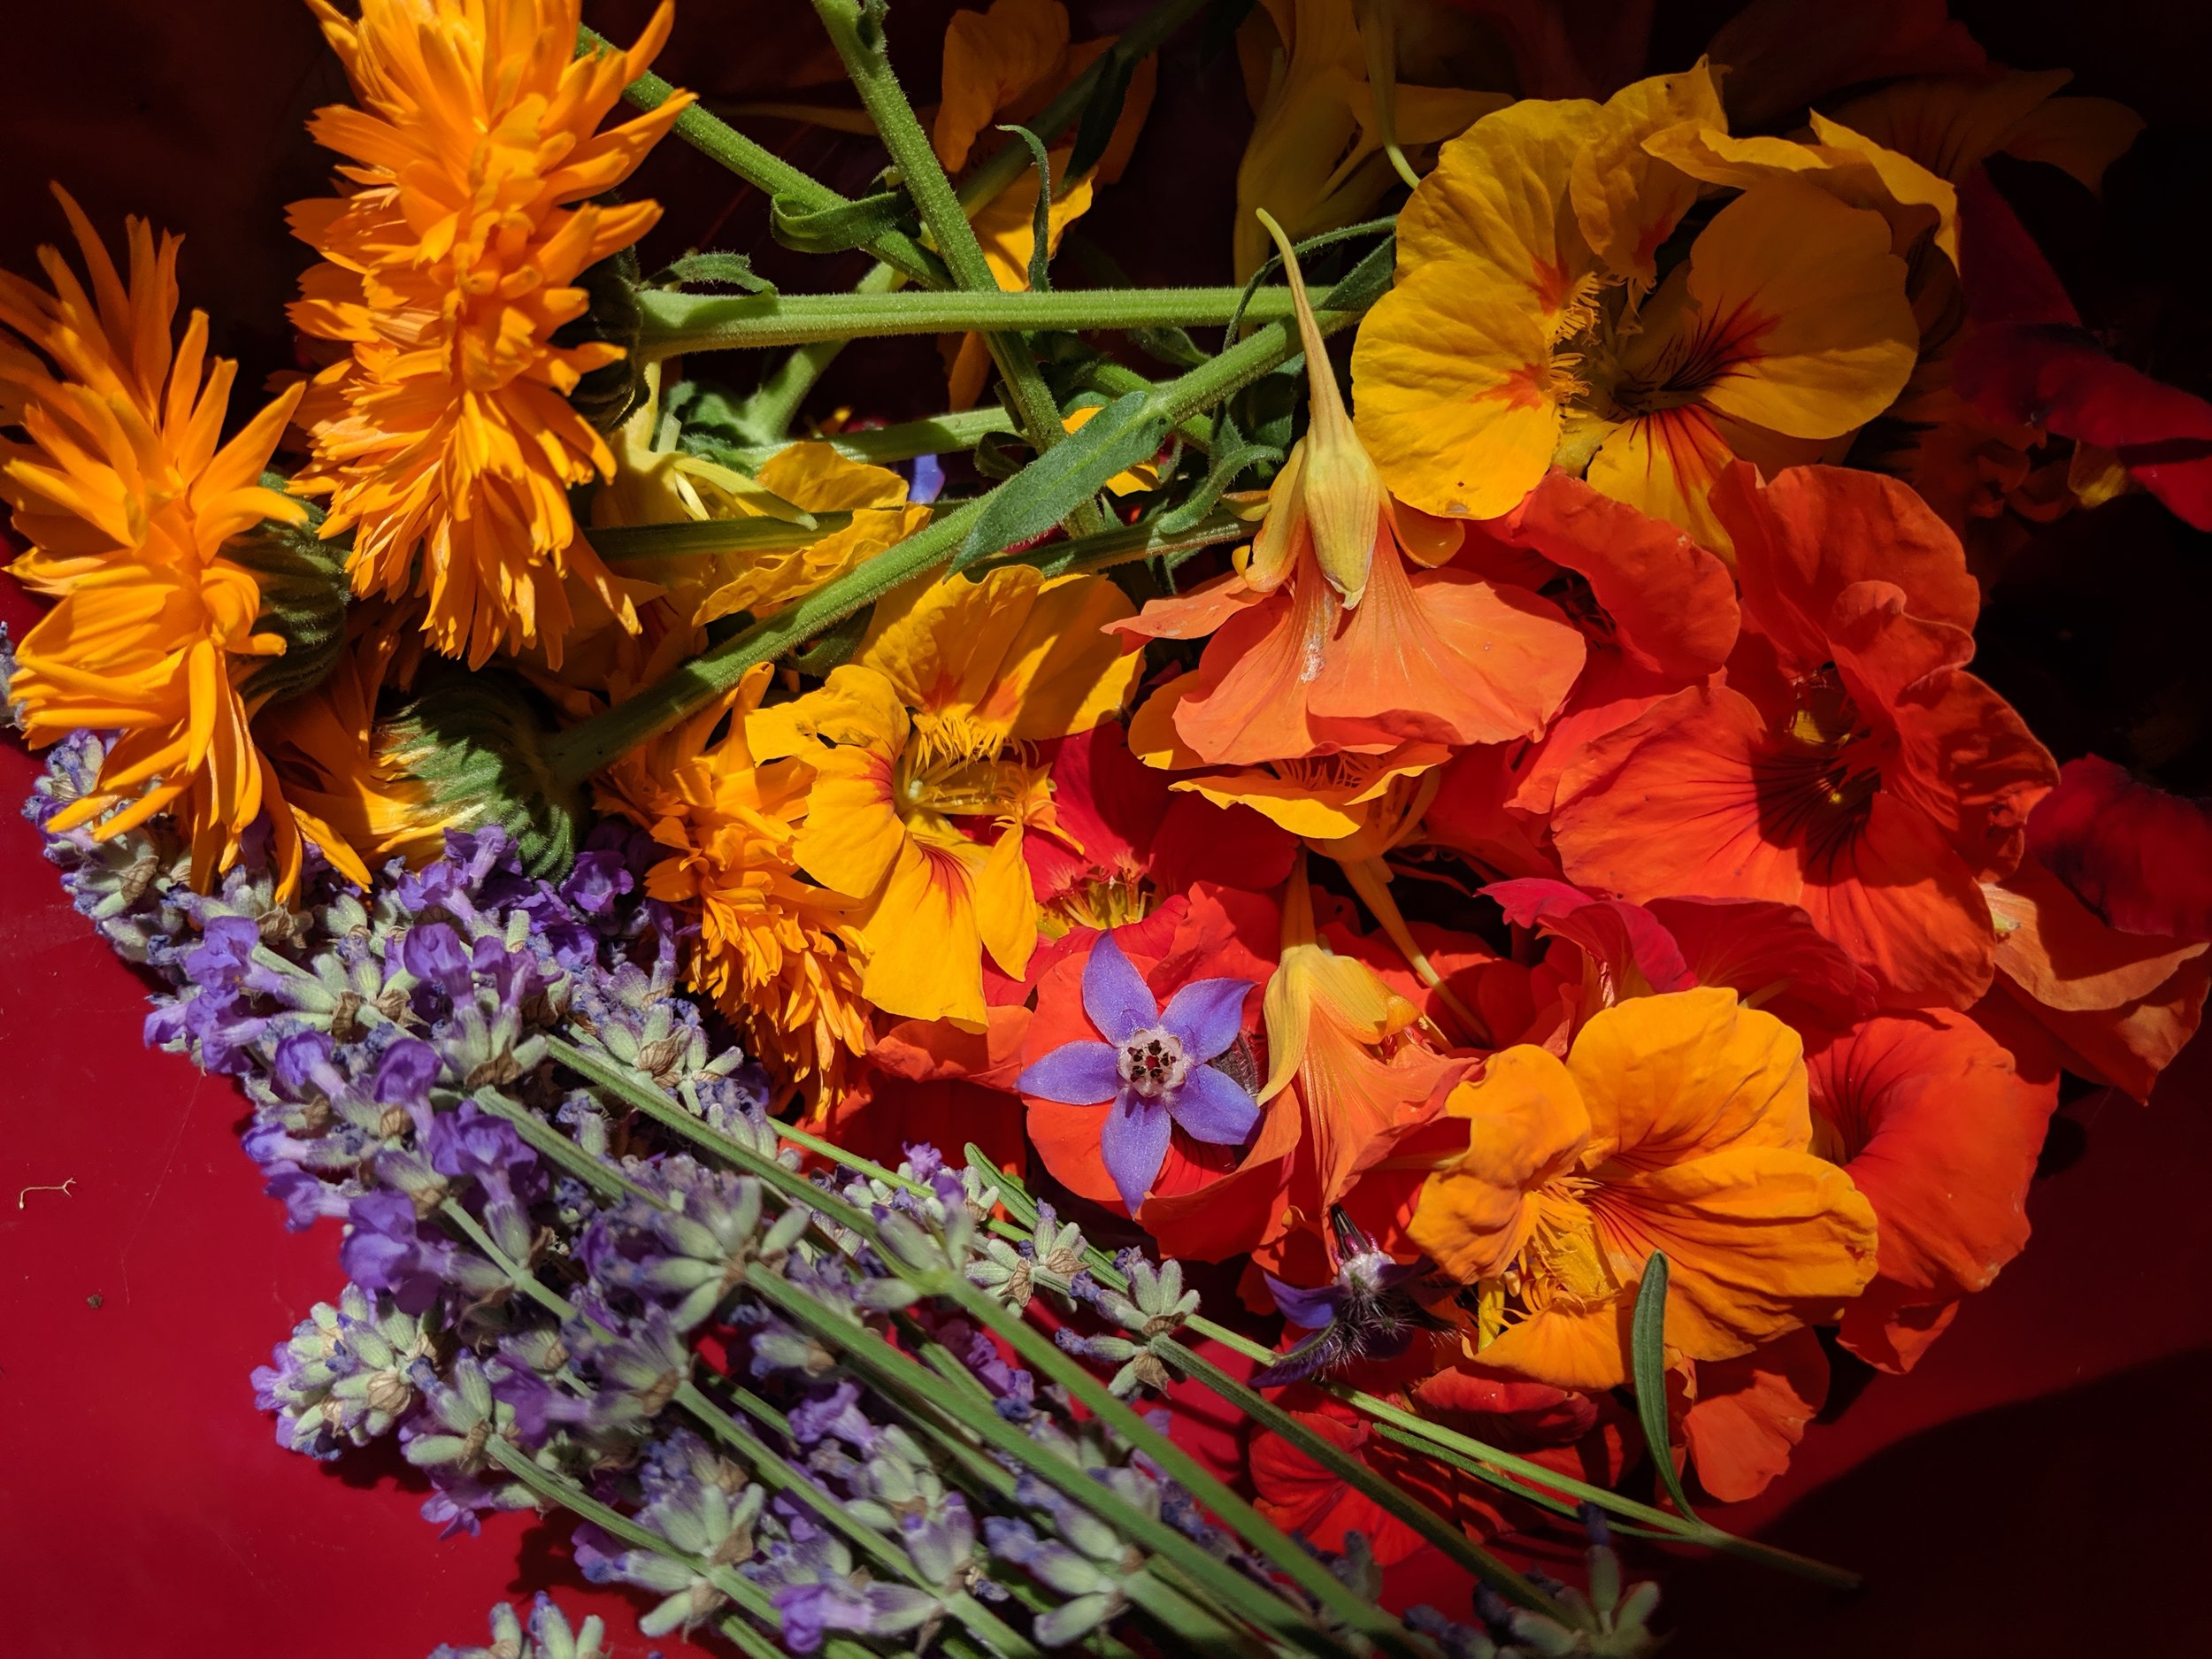 In this photo (clockwise from upper left): Calendula, Nasturtium, Borage, Lavender